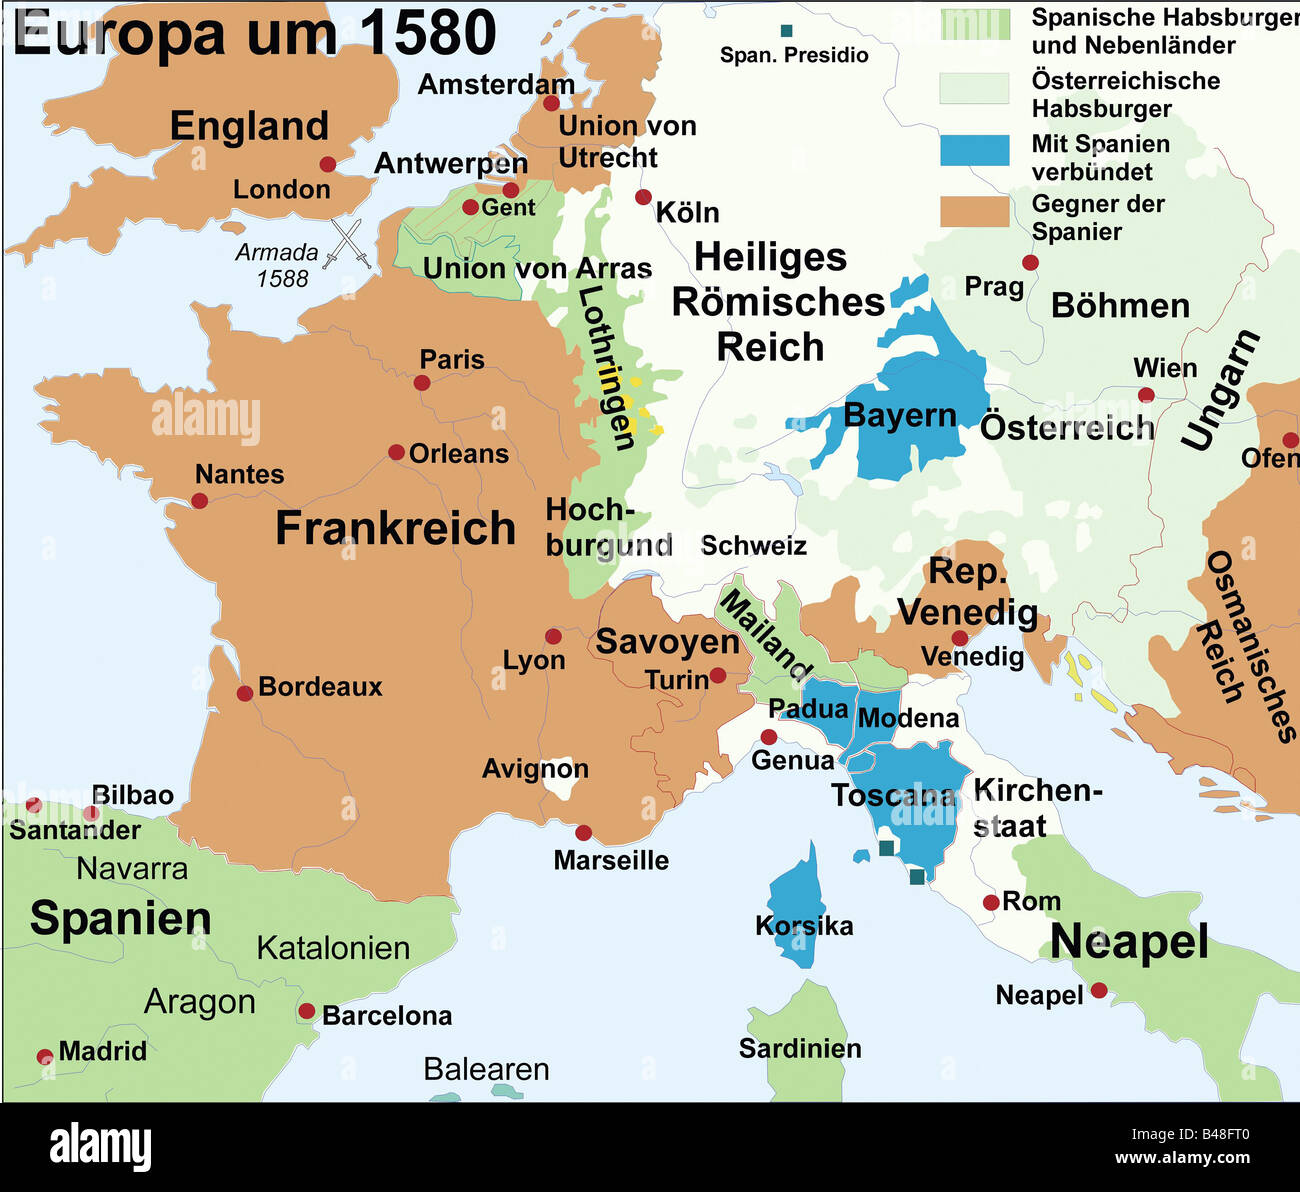 carthography historical maps modern times Europe circa 1580